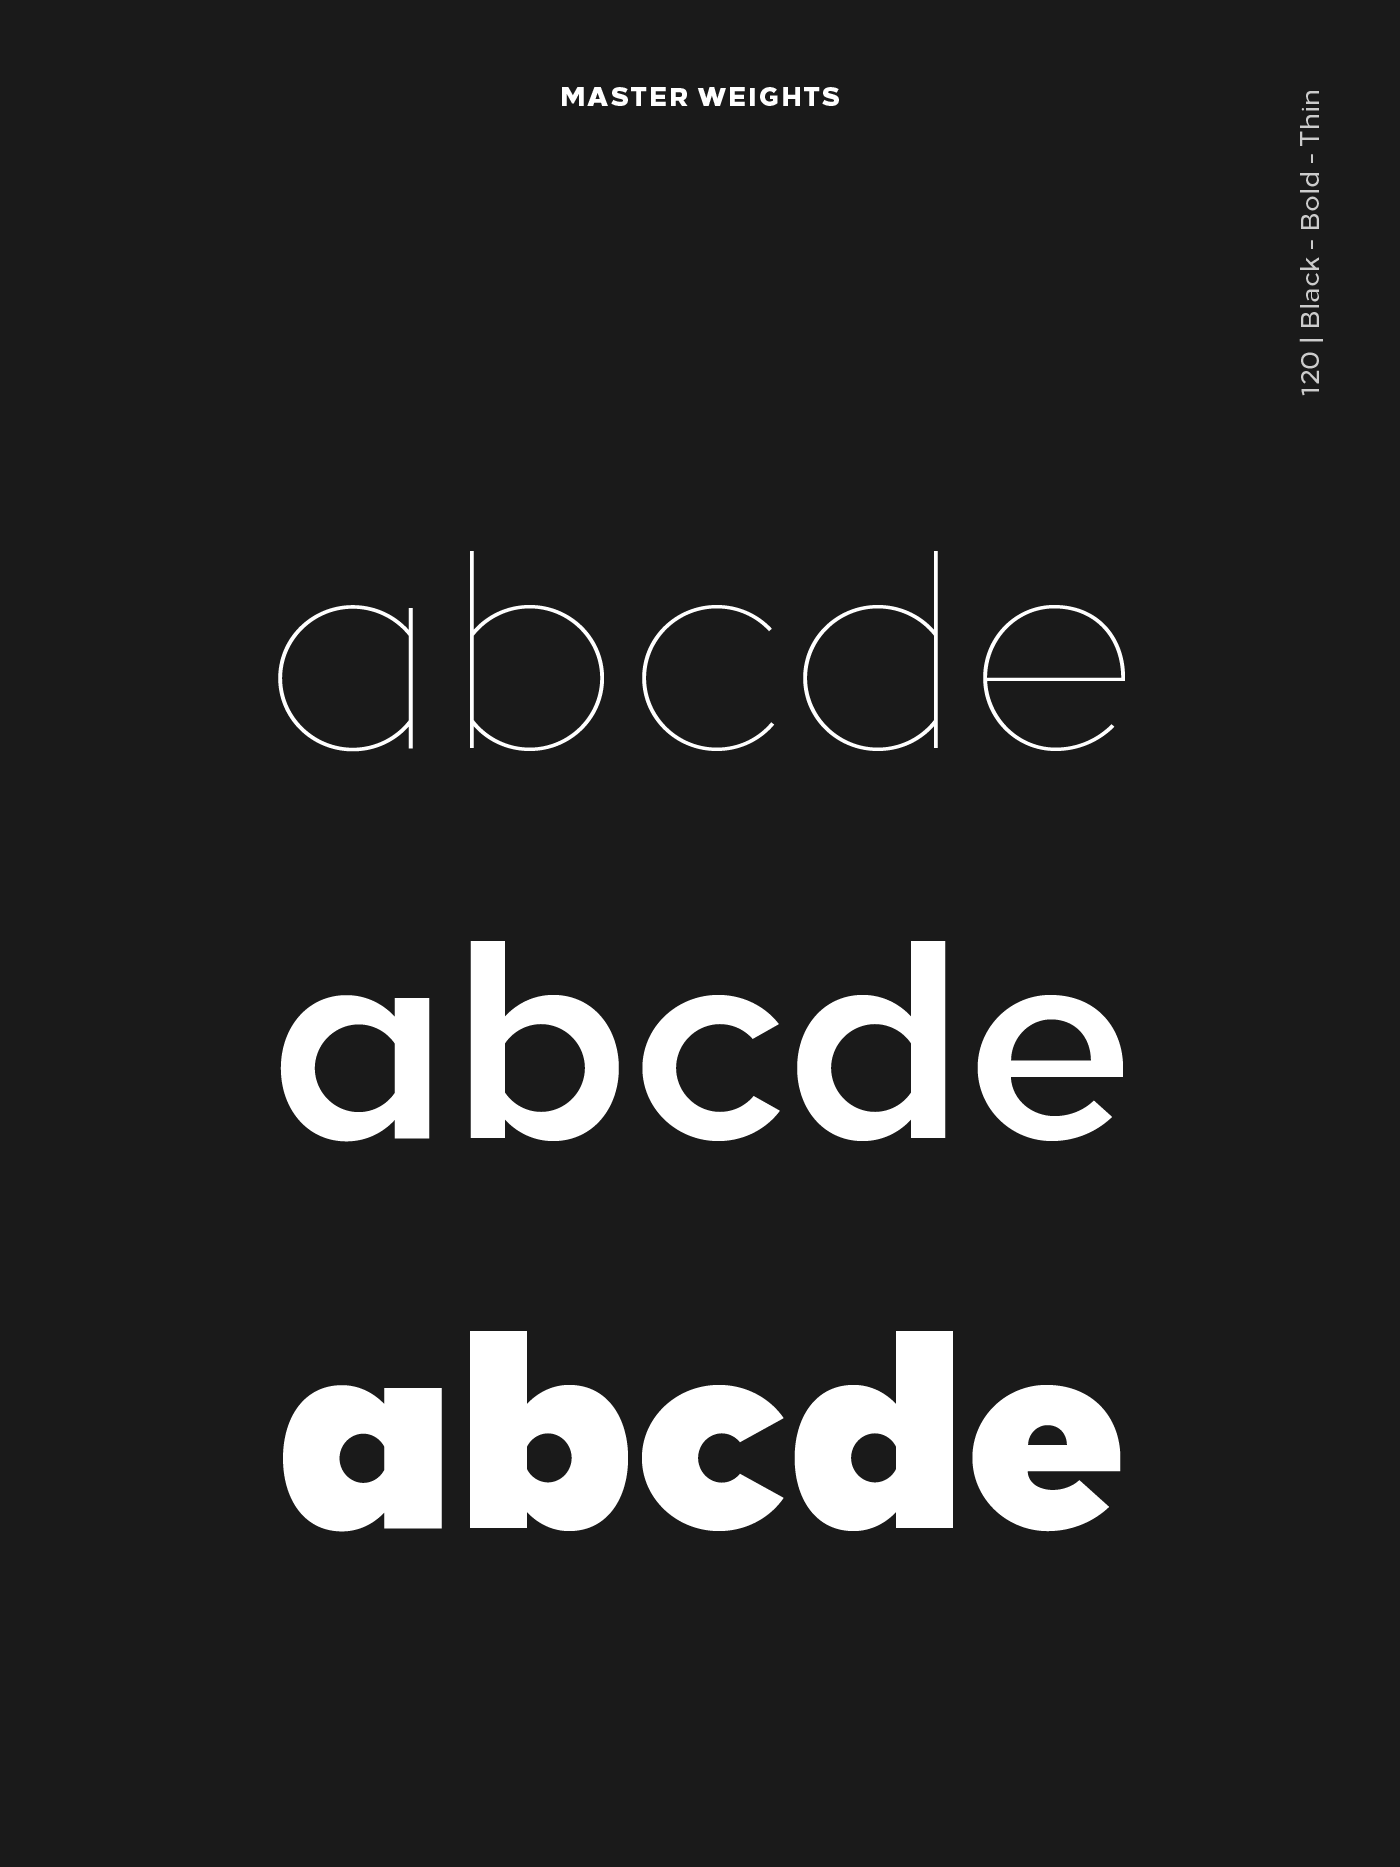 Loew - Font Family + FREE WEIGHT on Behance